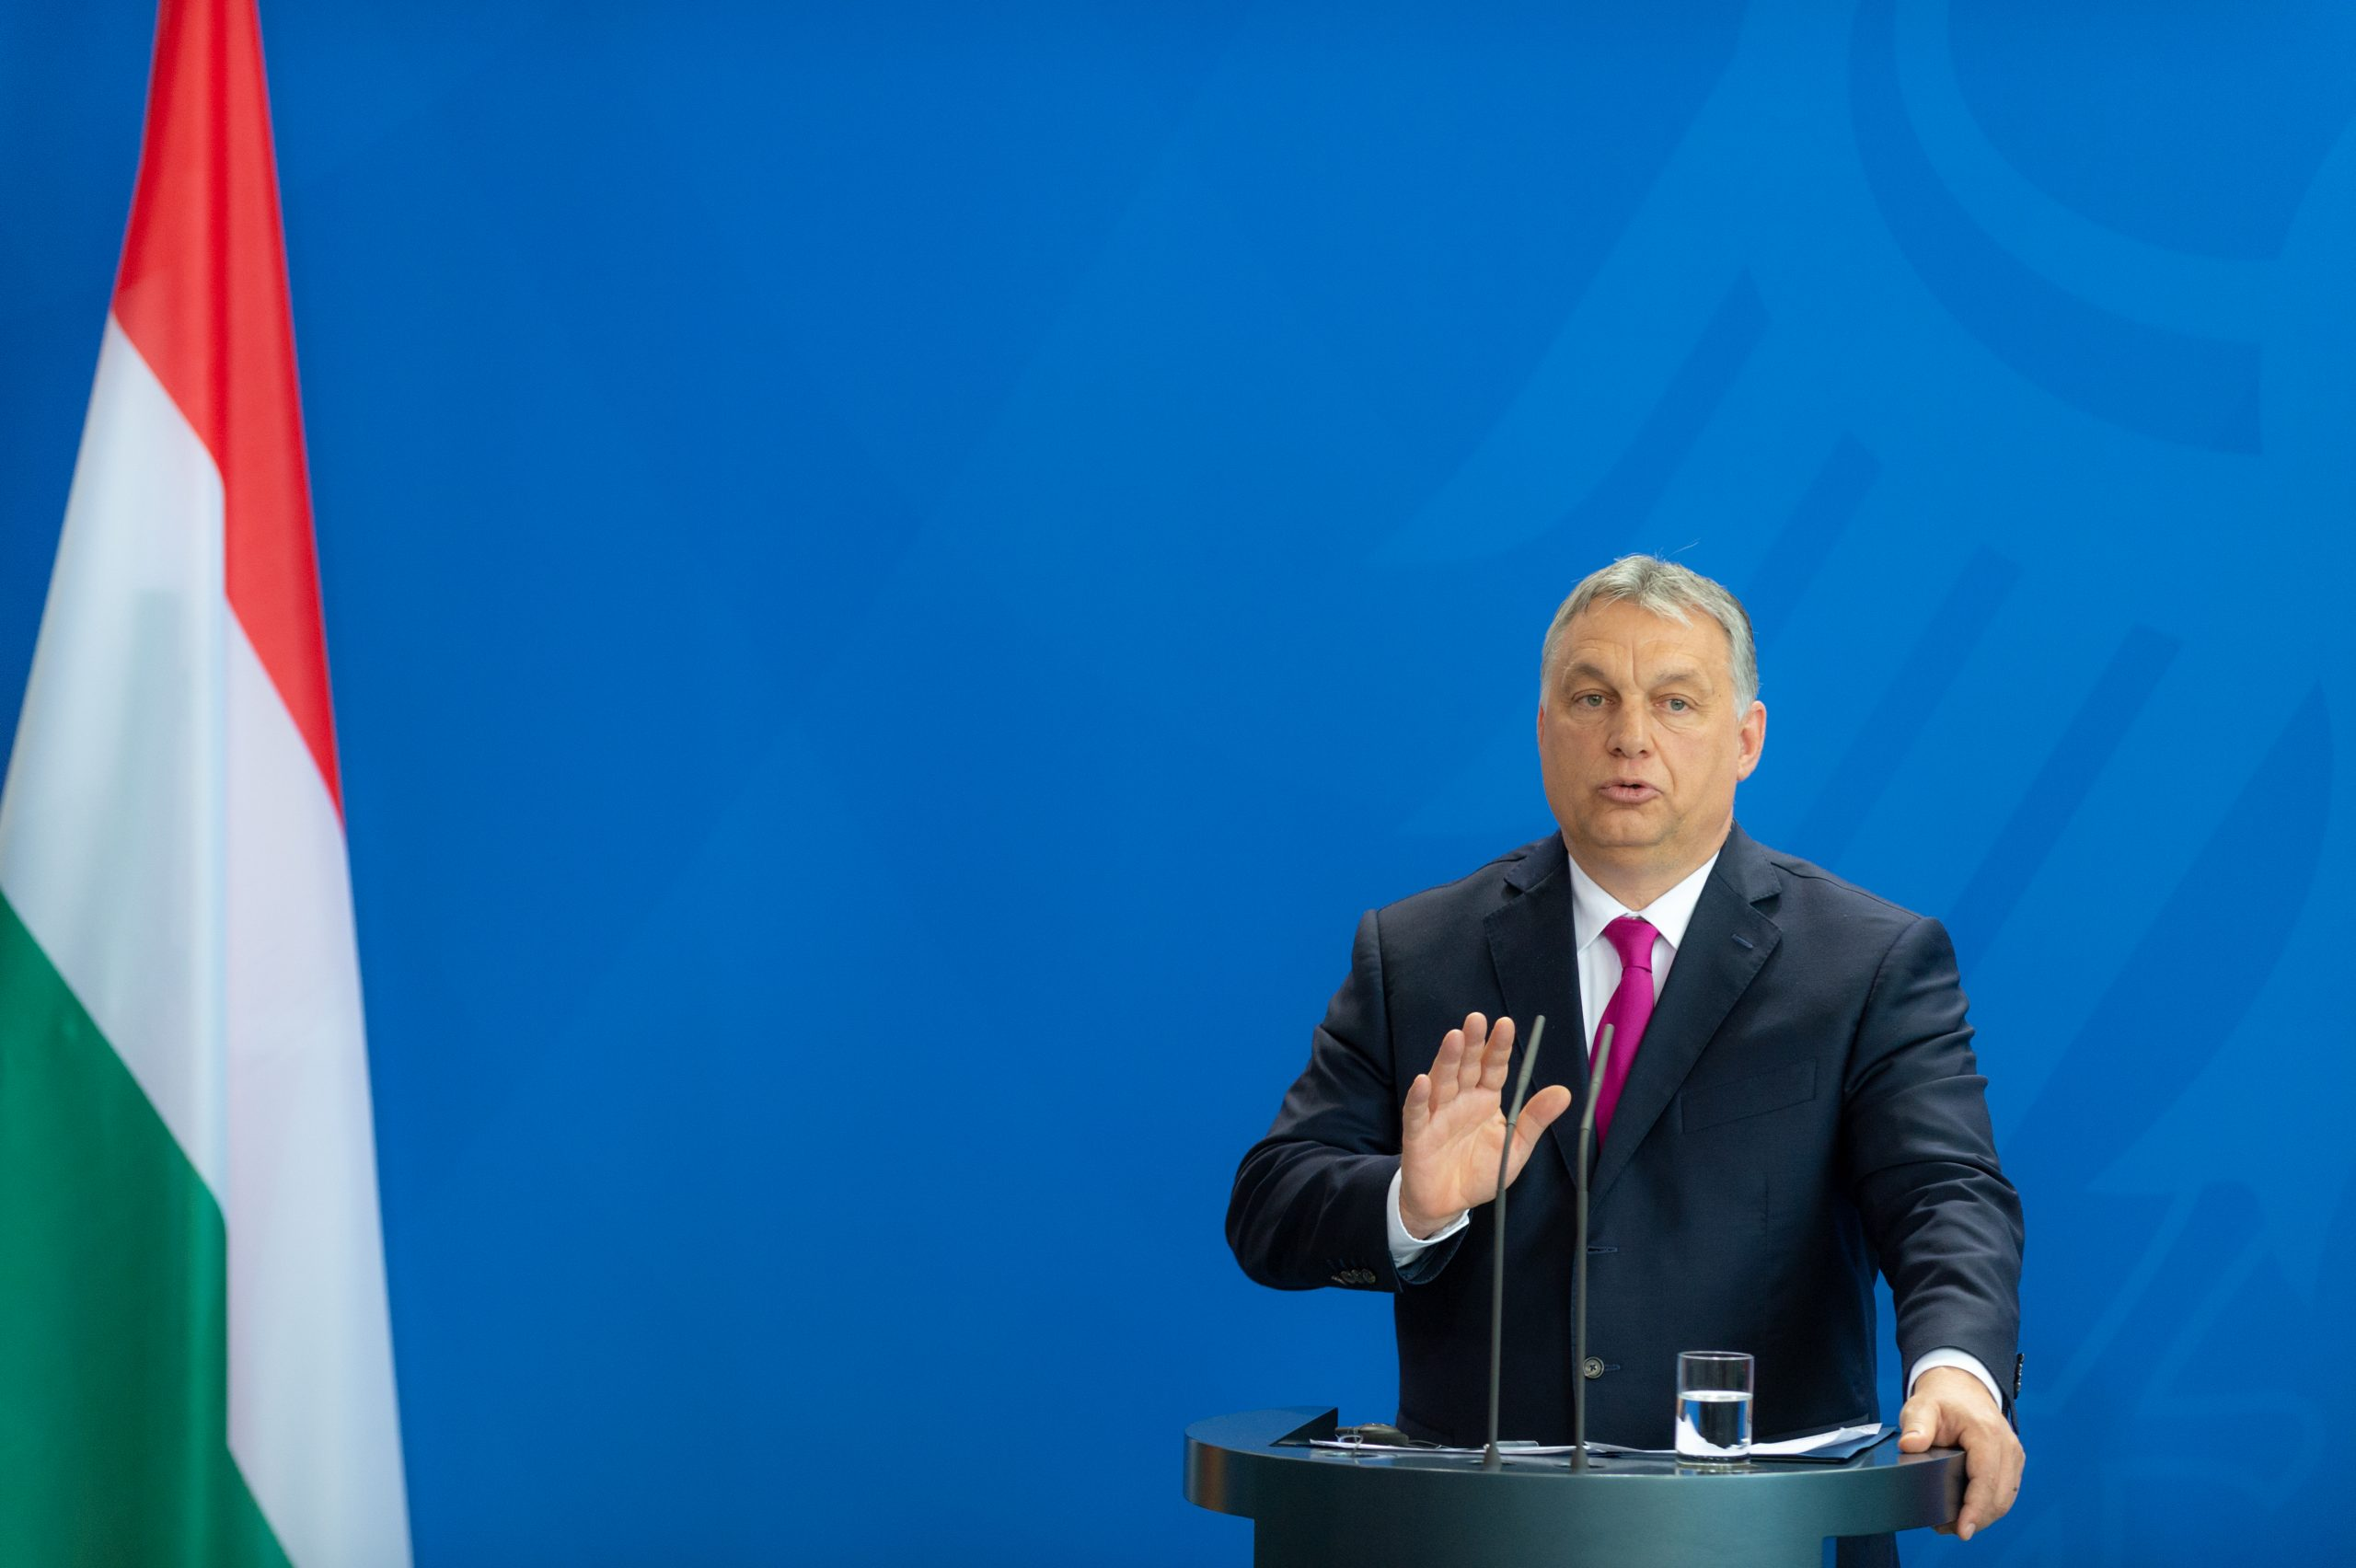 European leaders confront Hungarian PM over new anti-LGBTQ law: Repeal it or leave the EU